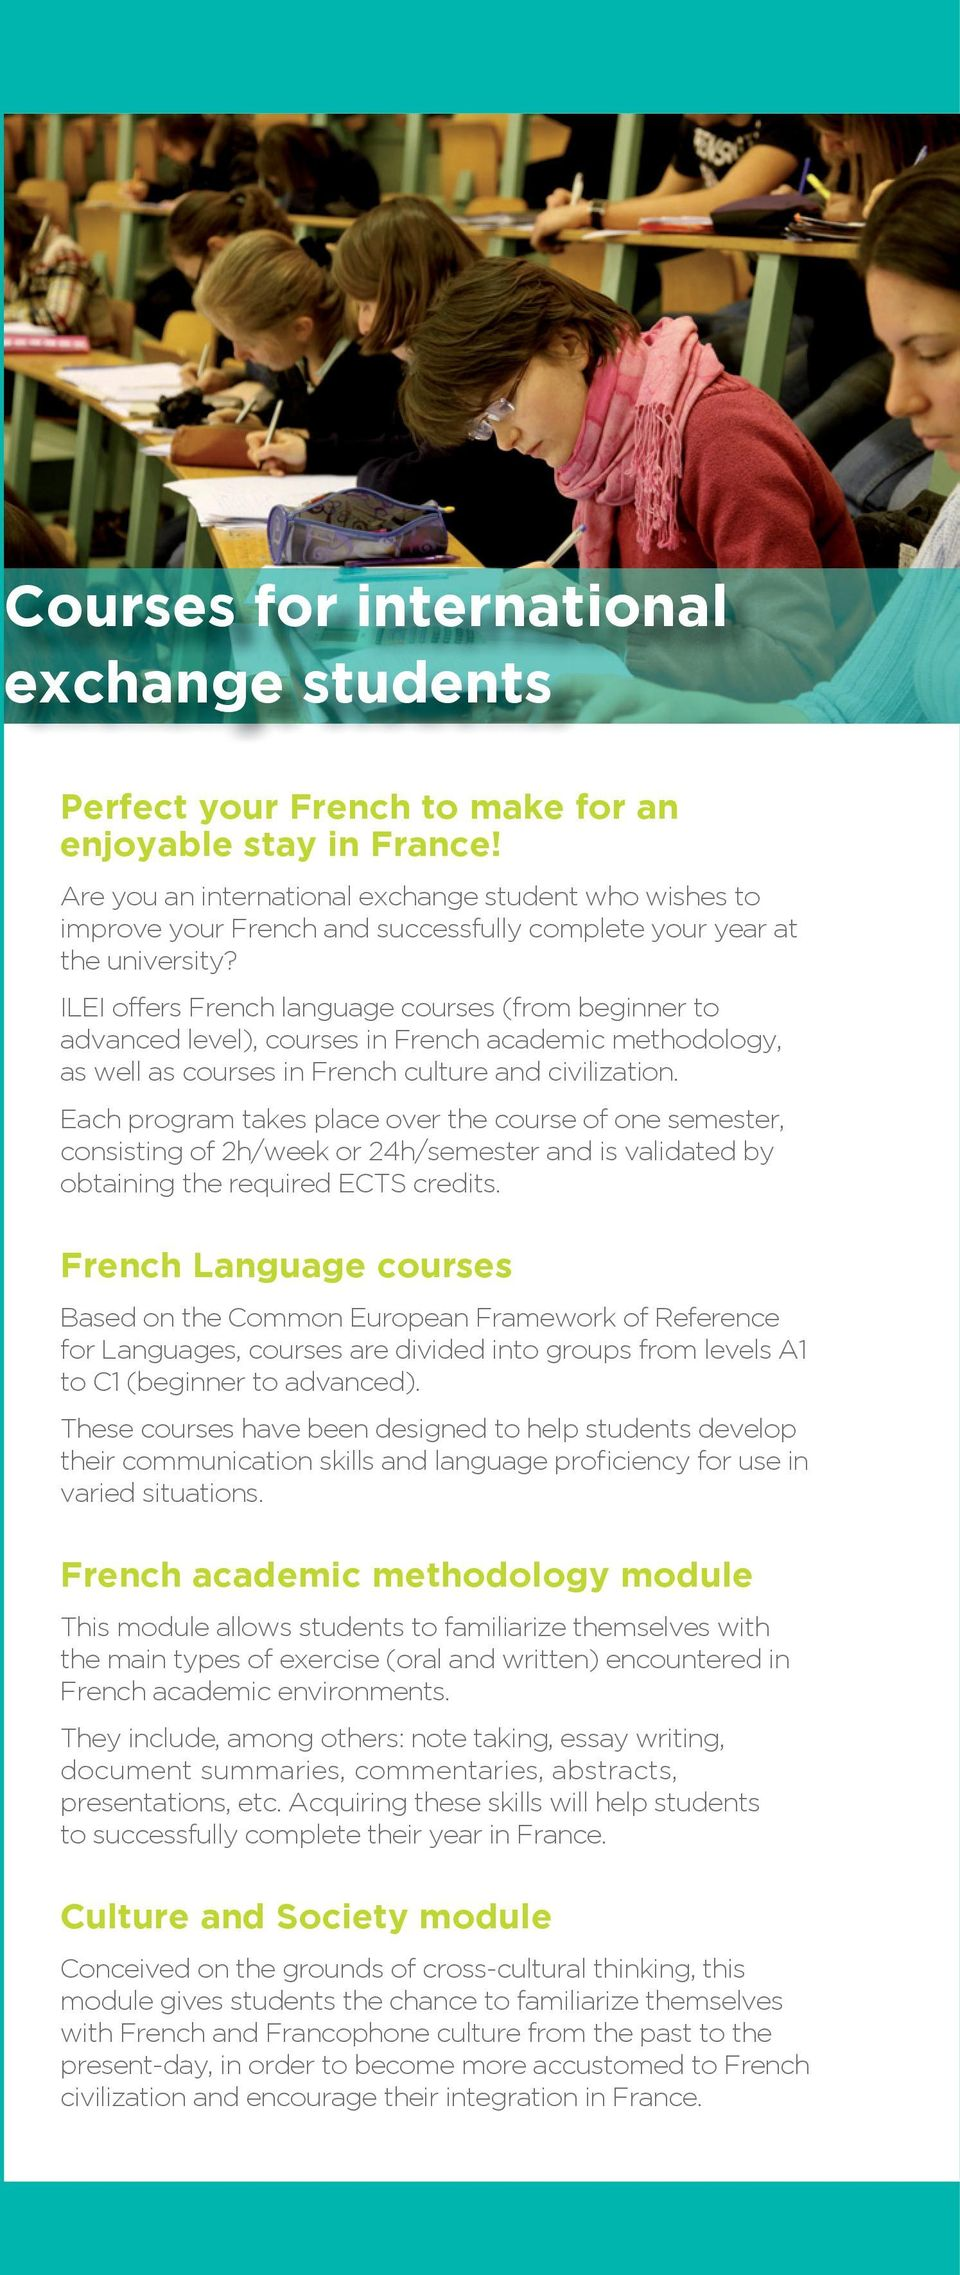 ILEI offers French language courses (from beginner to advanced level), courses in French academic methodology, as well as courses in French culture and civilization.